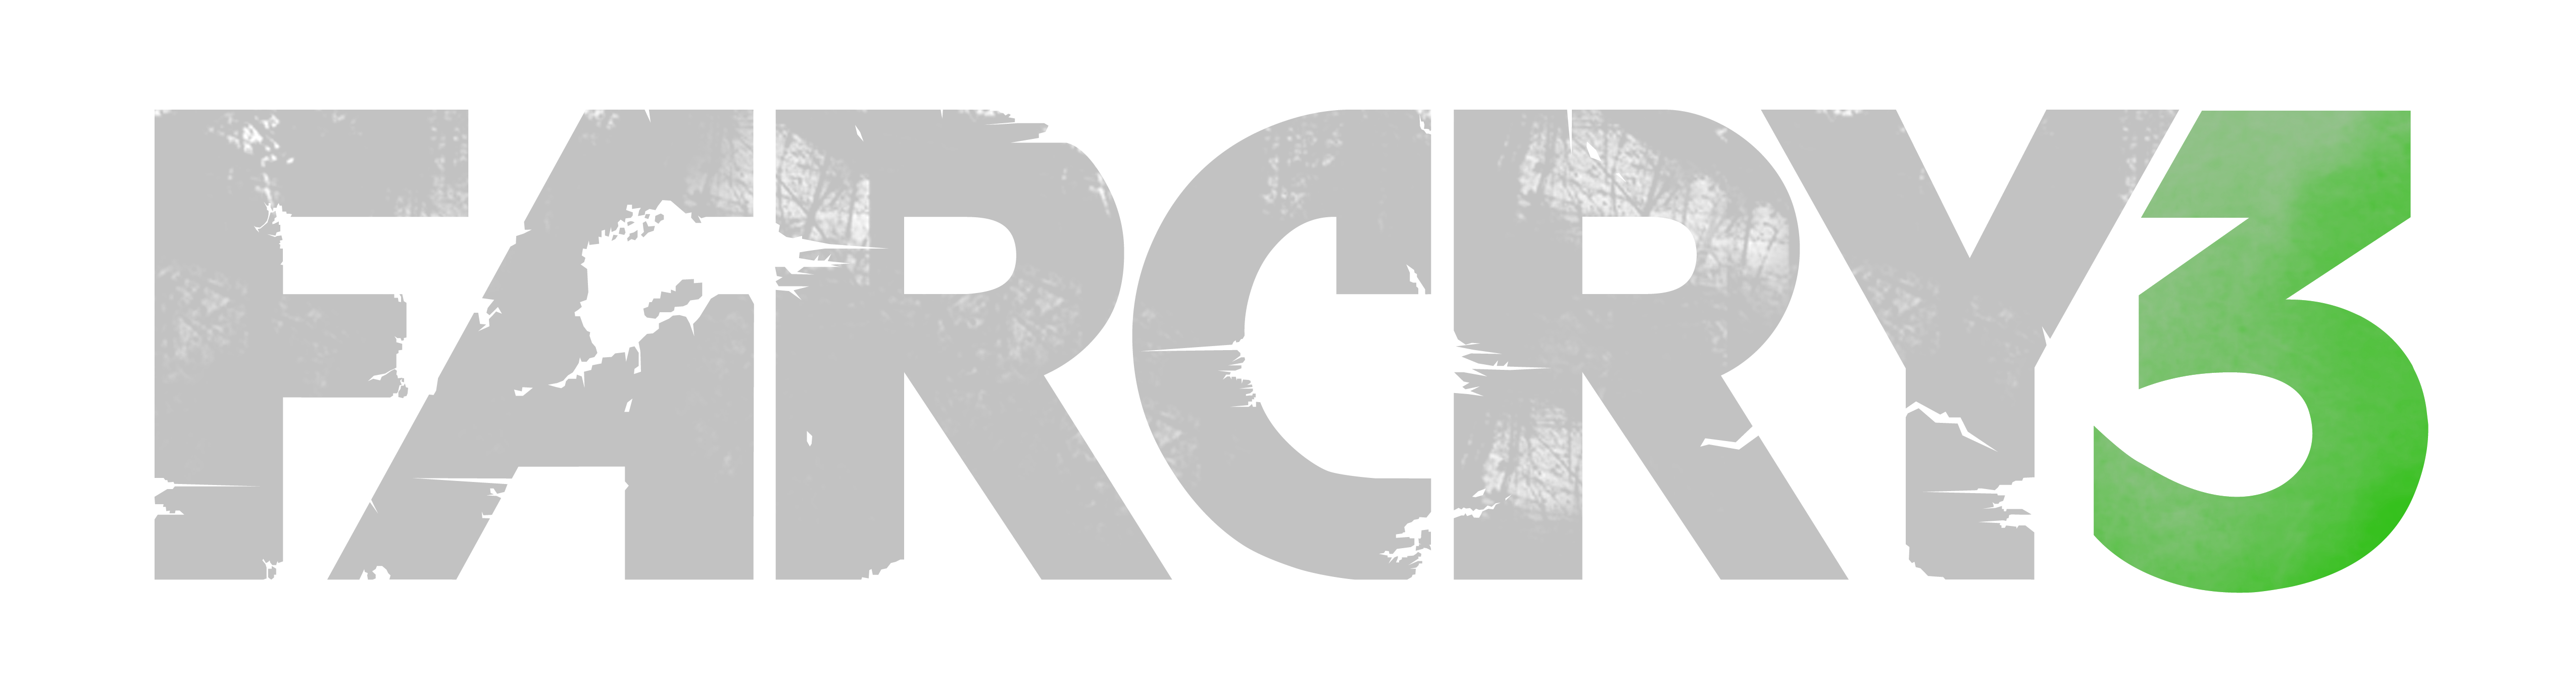 Far cry 3 logo png. The uk collectors edition